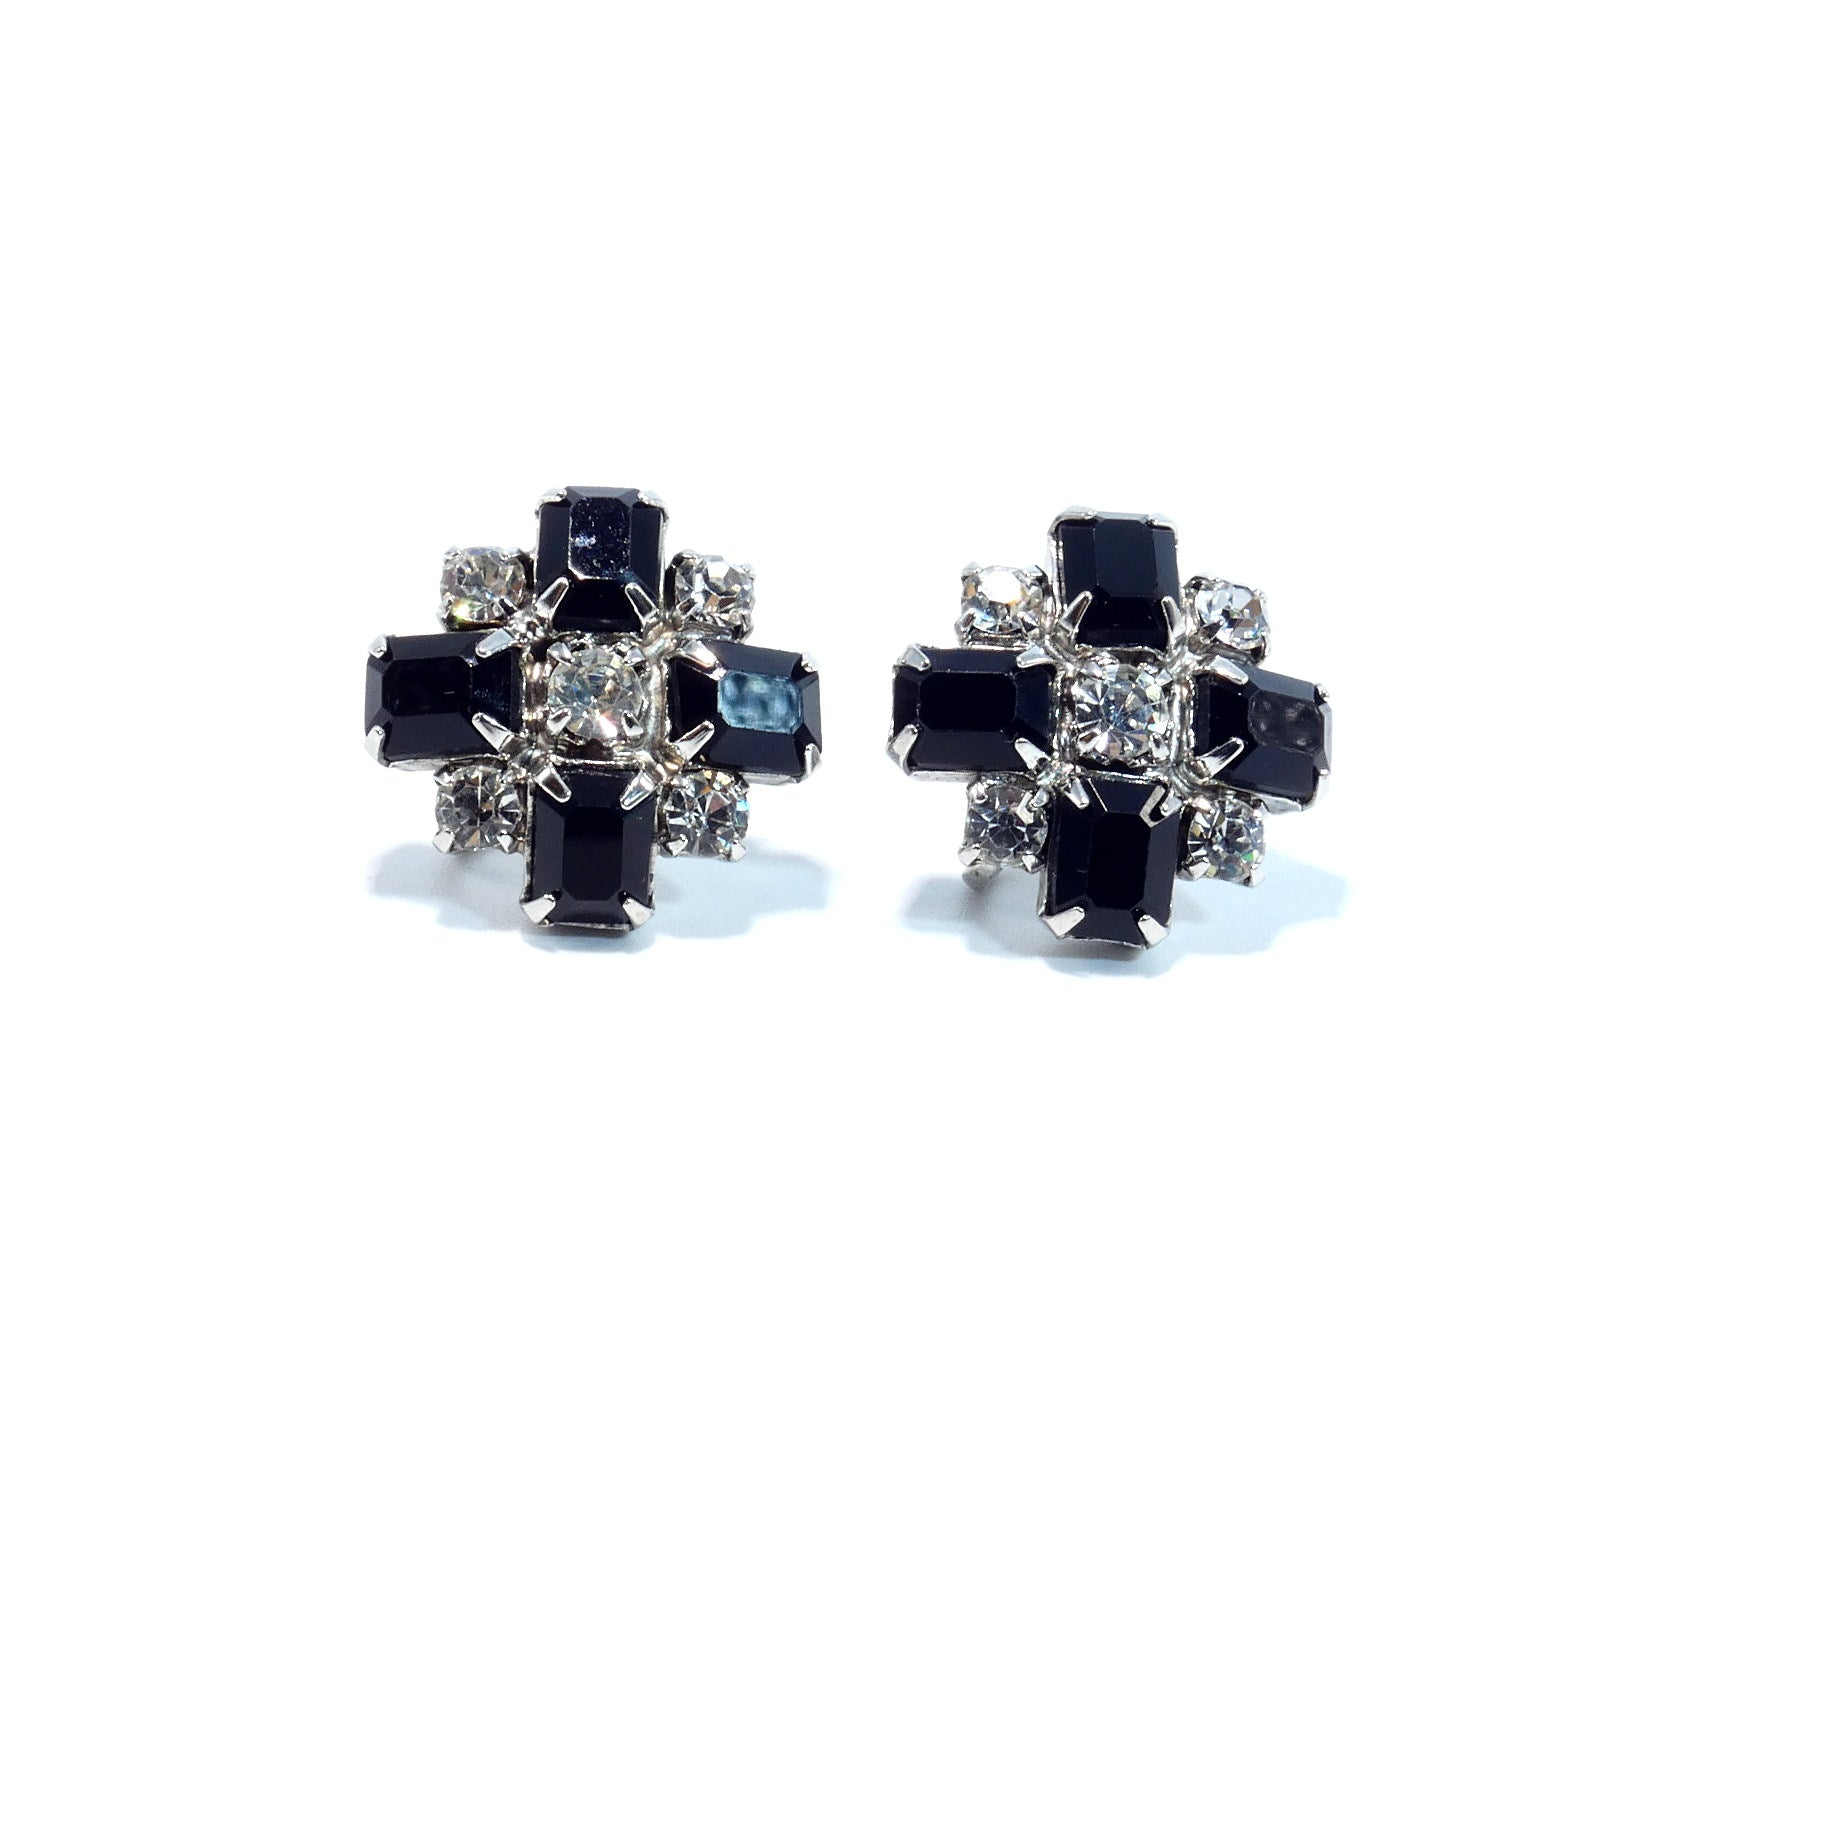 Vintage 1950s Black Rhinestone Cross Design Screw Back Earrings